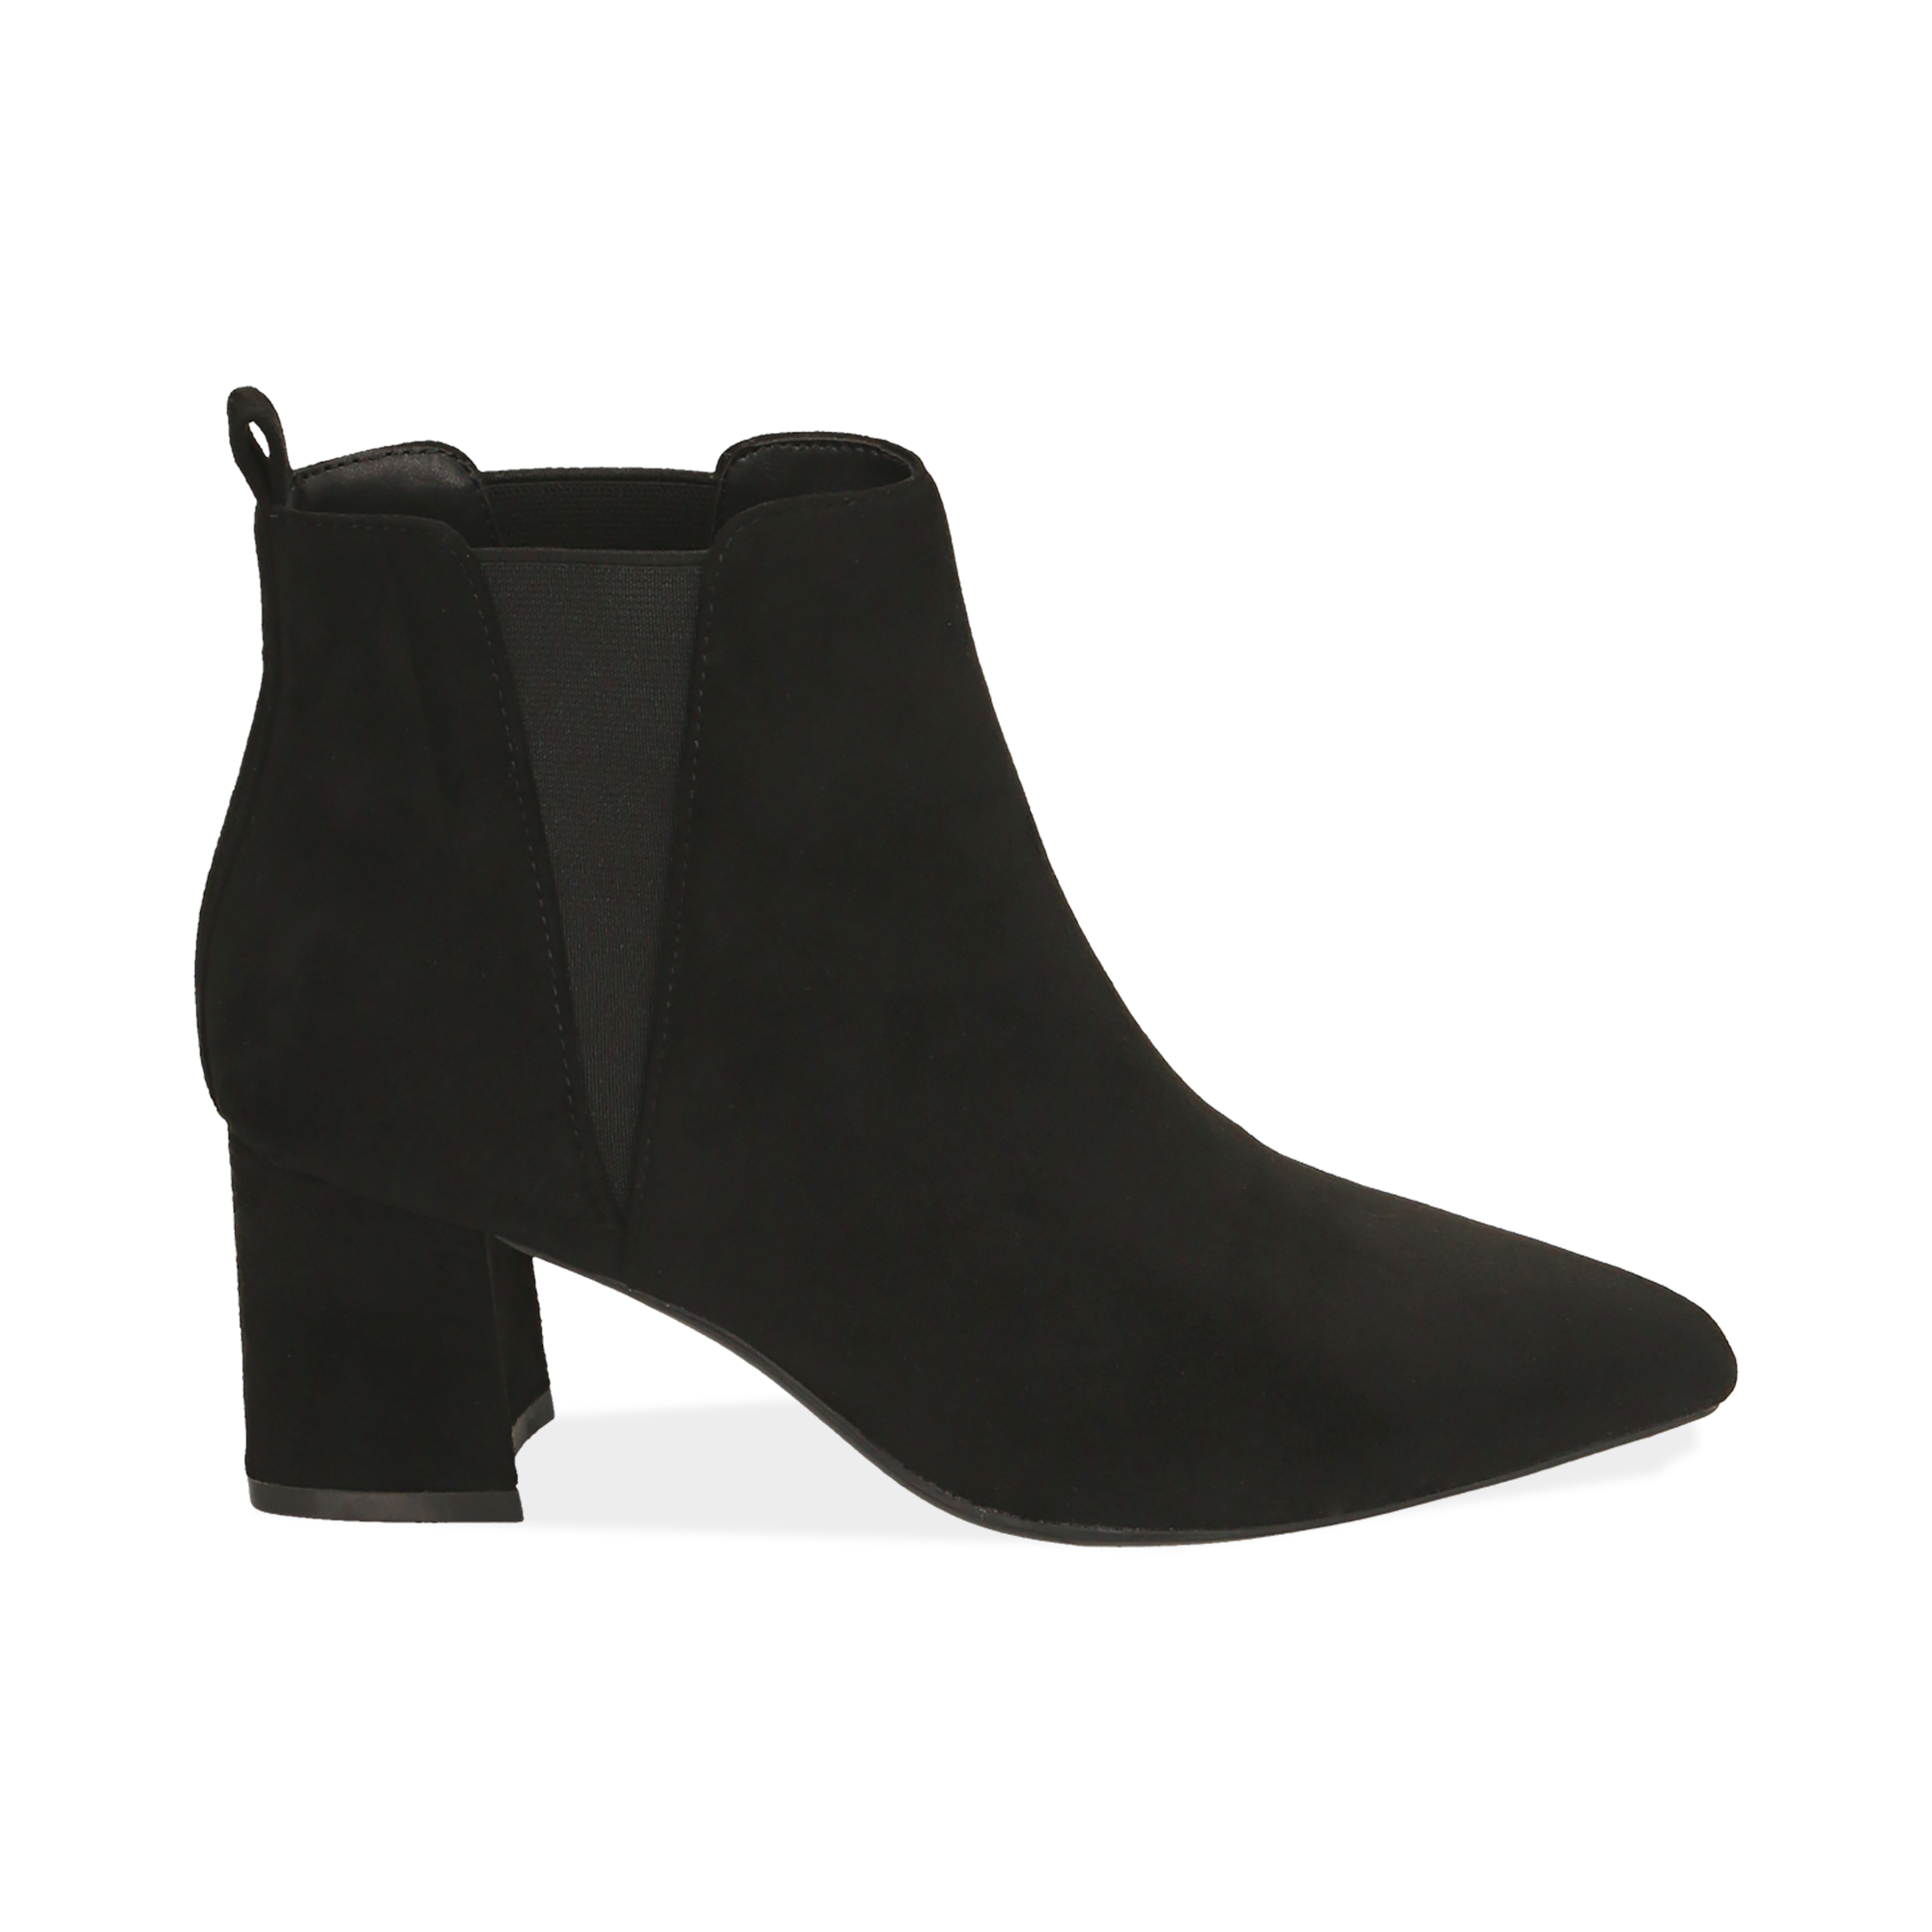 Ankle boots neri in microfibra, tacco 6 cm